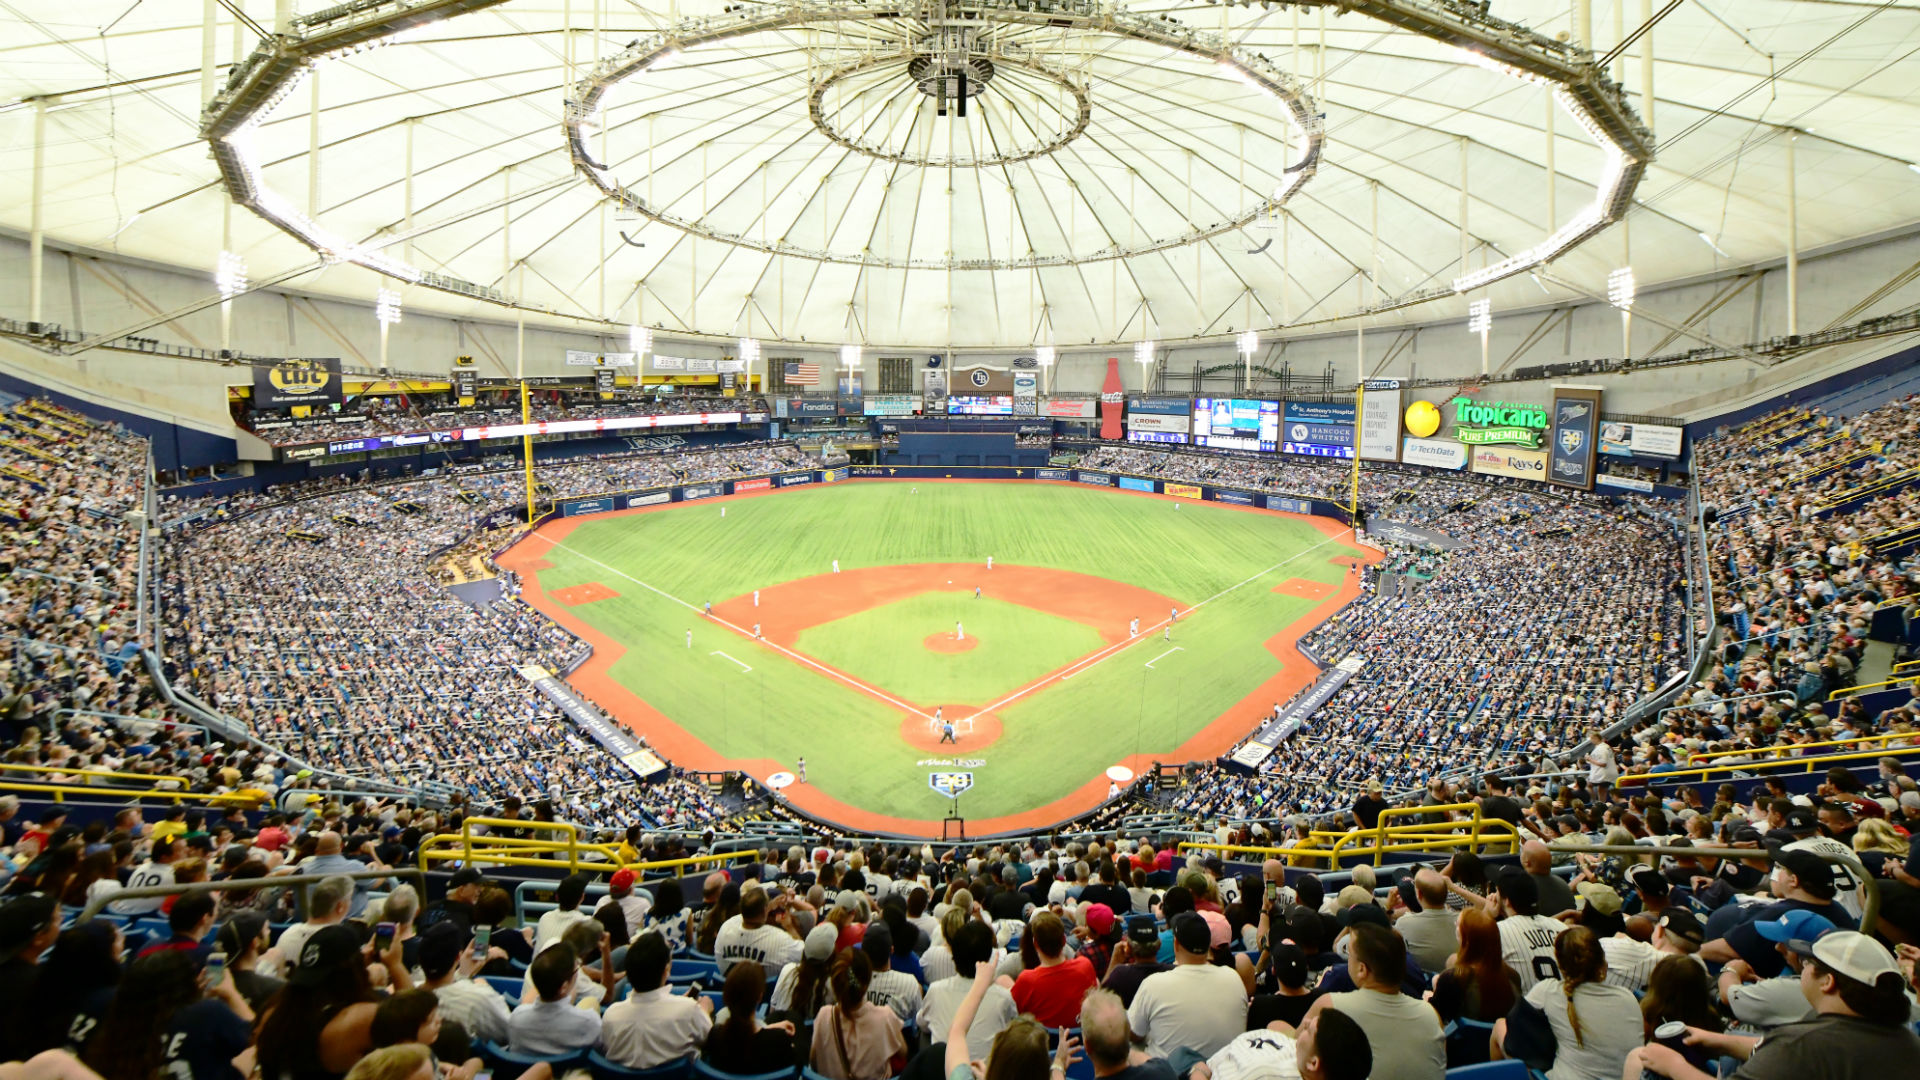 Rays Plan to Close Upper Deck Seating, Reduce Capacity to 26,000